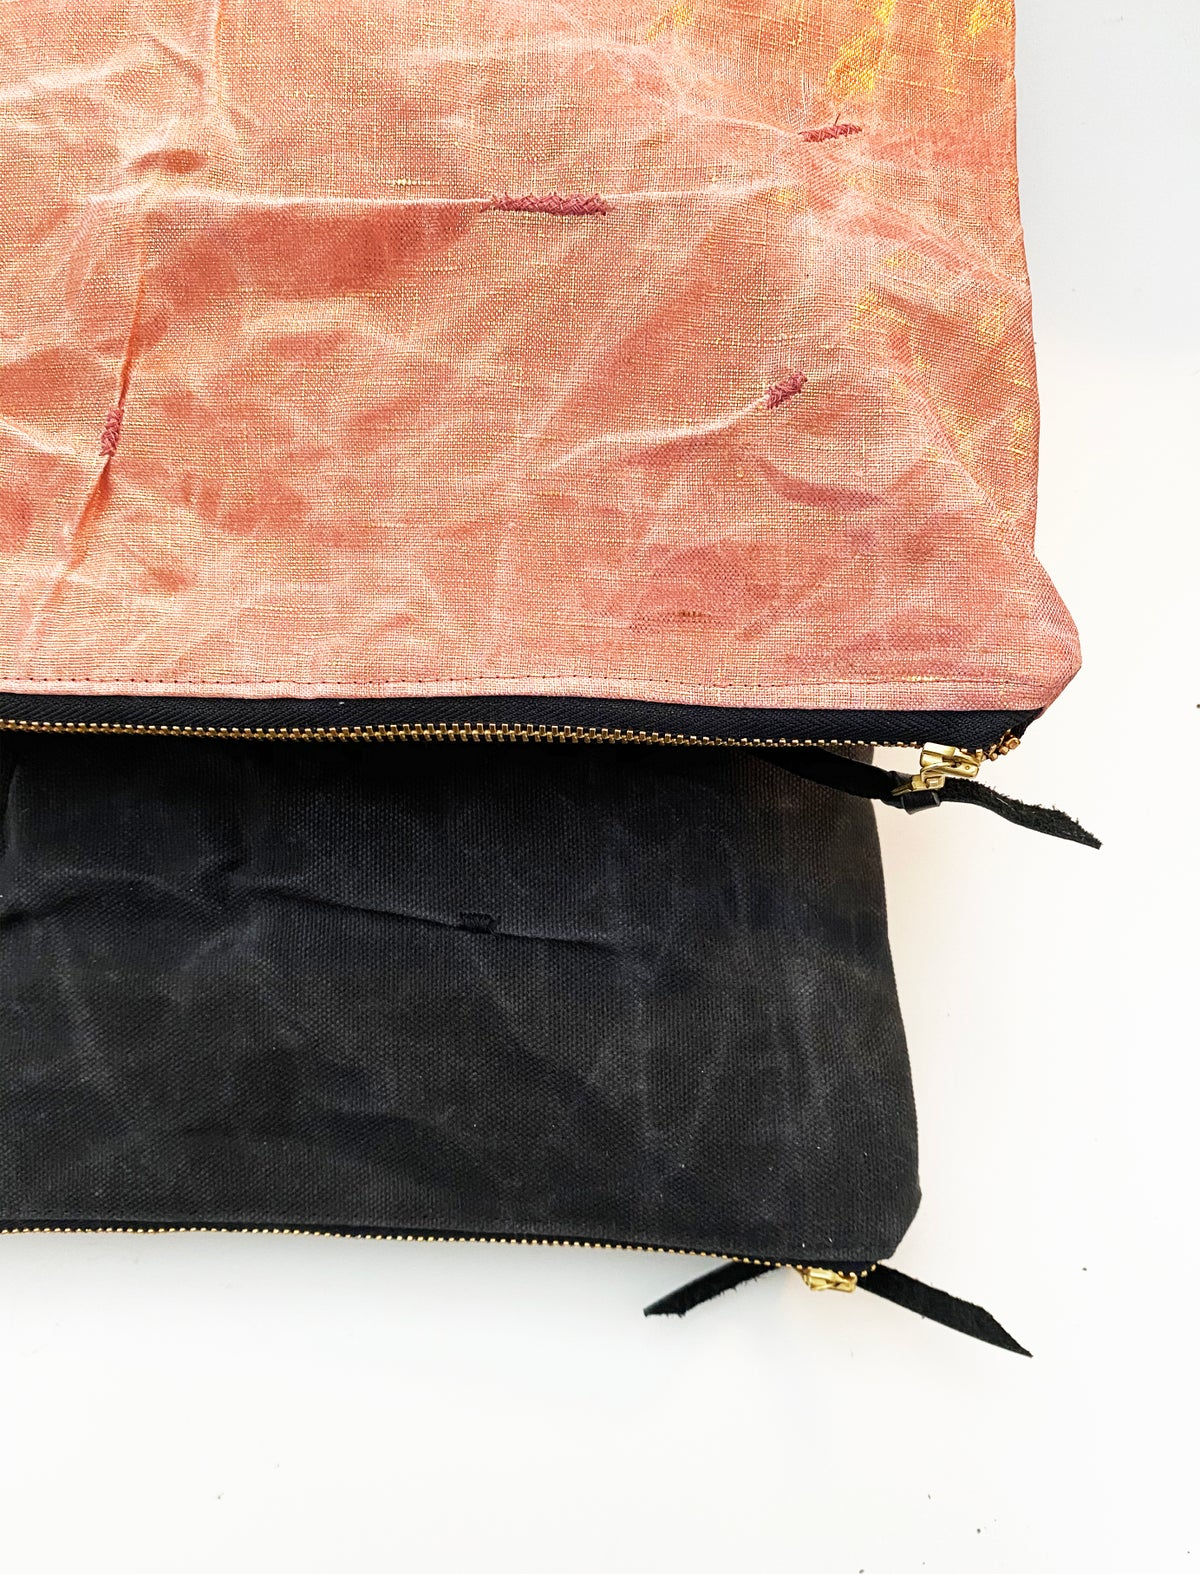 Mended Chaos - Large Clutch in Black Waxed Canvas